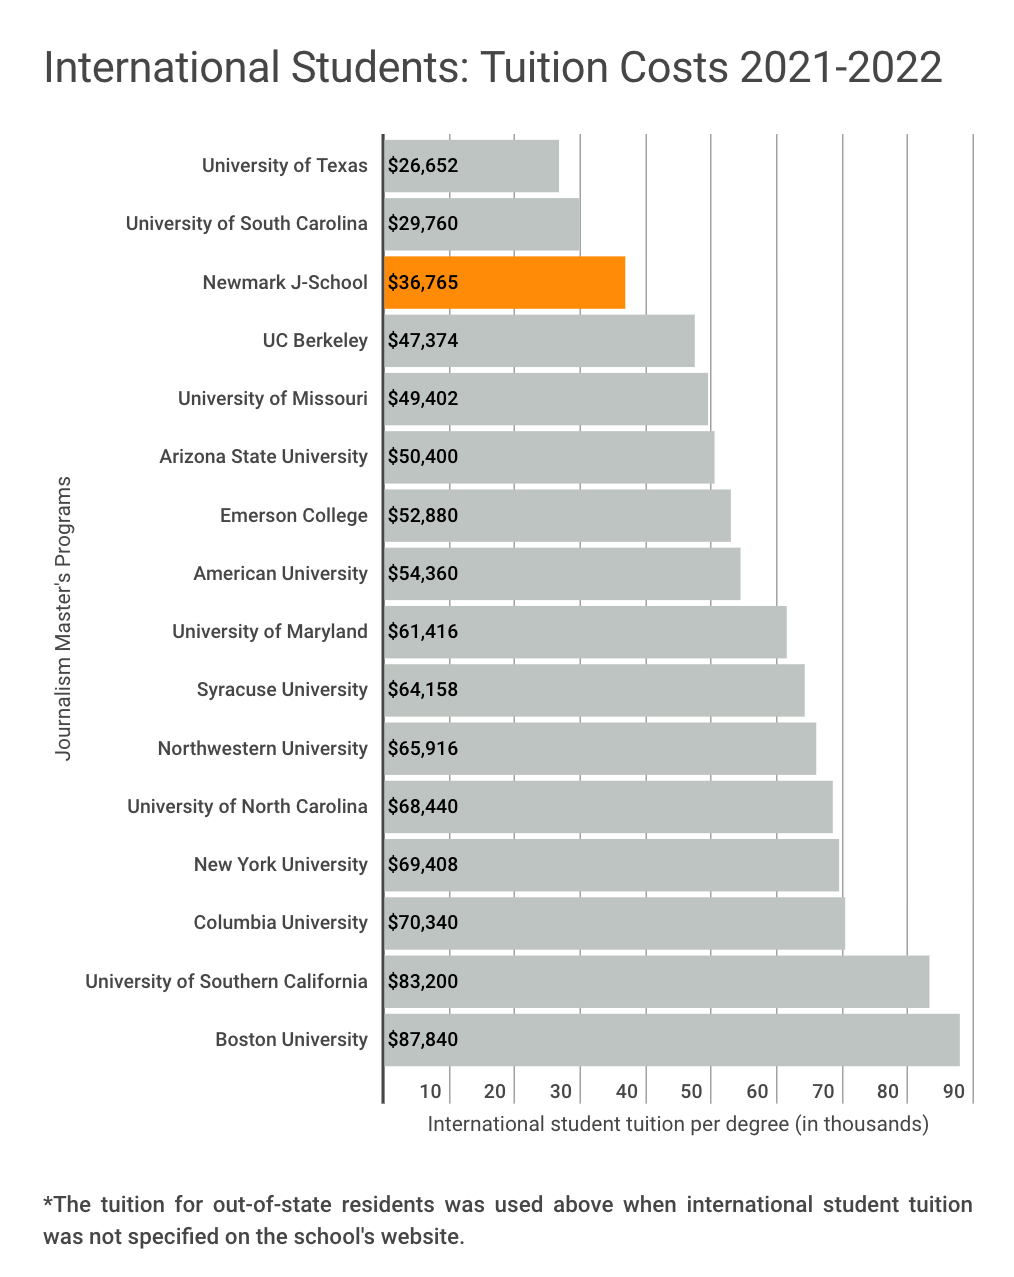 Tuition comparison chart for international students in 2021-2022 academic year. This chart shows that Newmark J-School has the third lowest tuition for international students among 16 of the most popular journalism graduate programs in the U.S. Only the University of Texas at $26,652, and the University of South Carolina at $29,760, have lower tuitions than Newmark J-School's $36,765. The costliest tuition for international students shown in this chart is Boston University at $87,840.